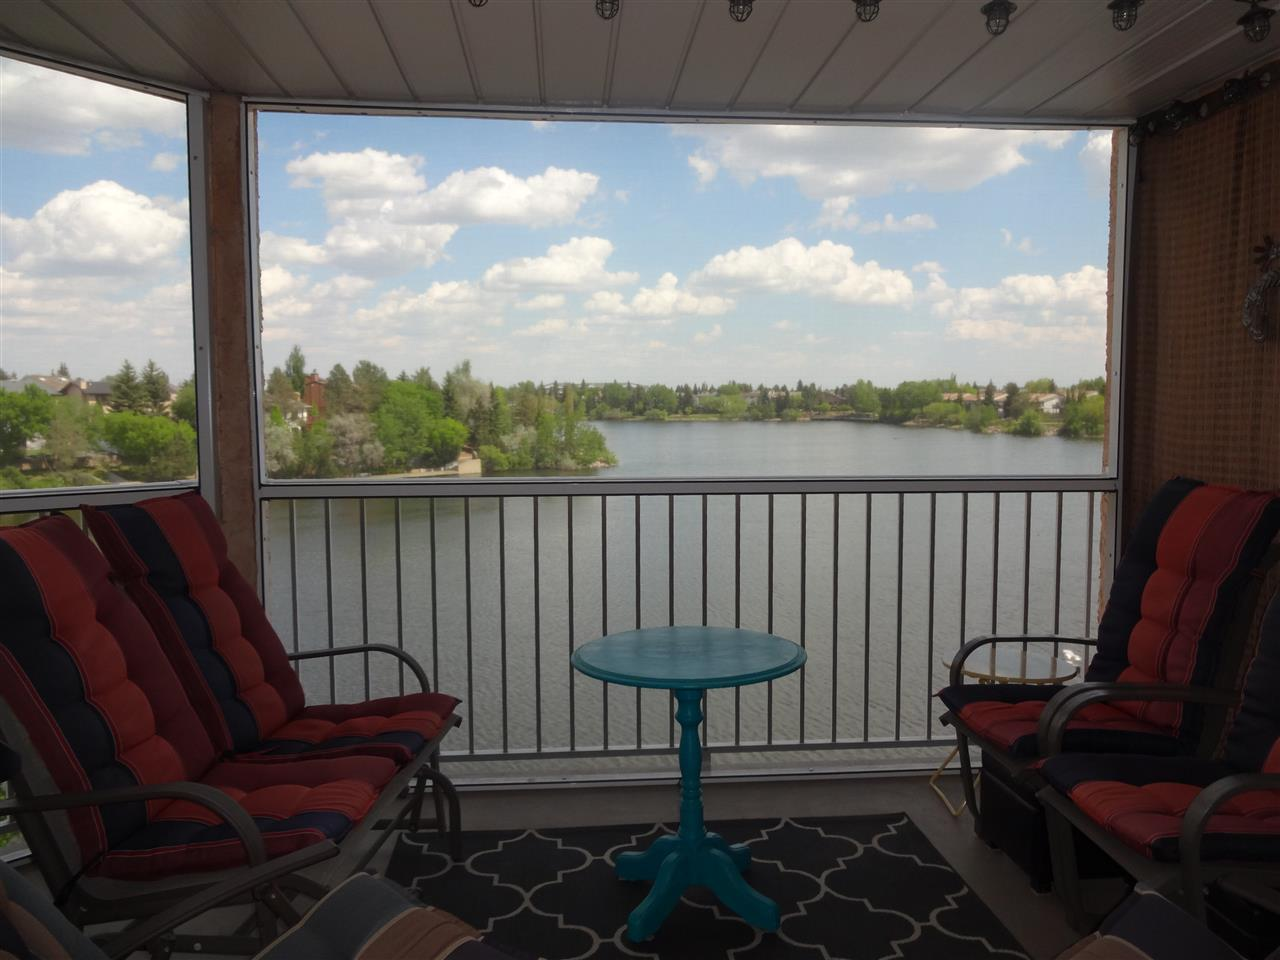 Main Photo: 326 15499 CASTLE DOWNS Road in Edmonton: Zone 27 Condo for sale : MLS® # E4057526